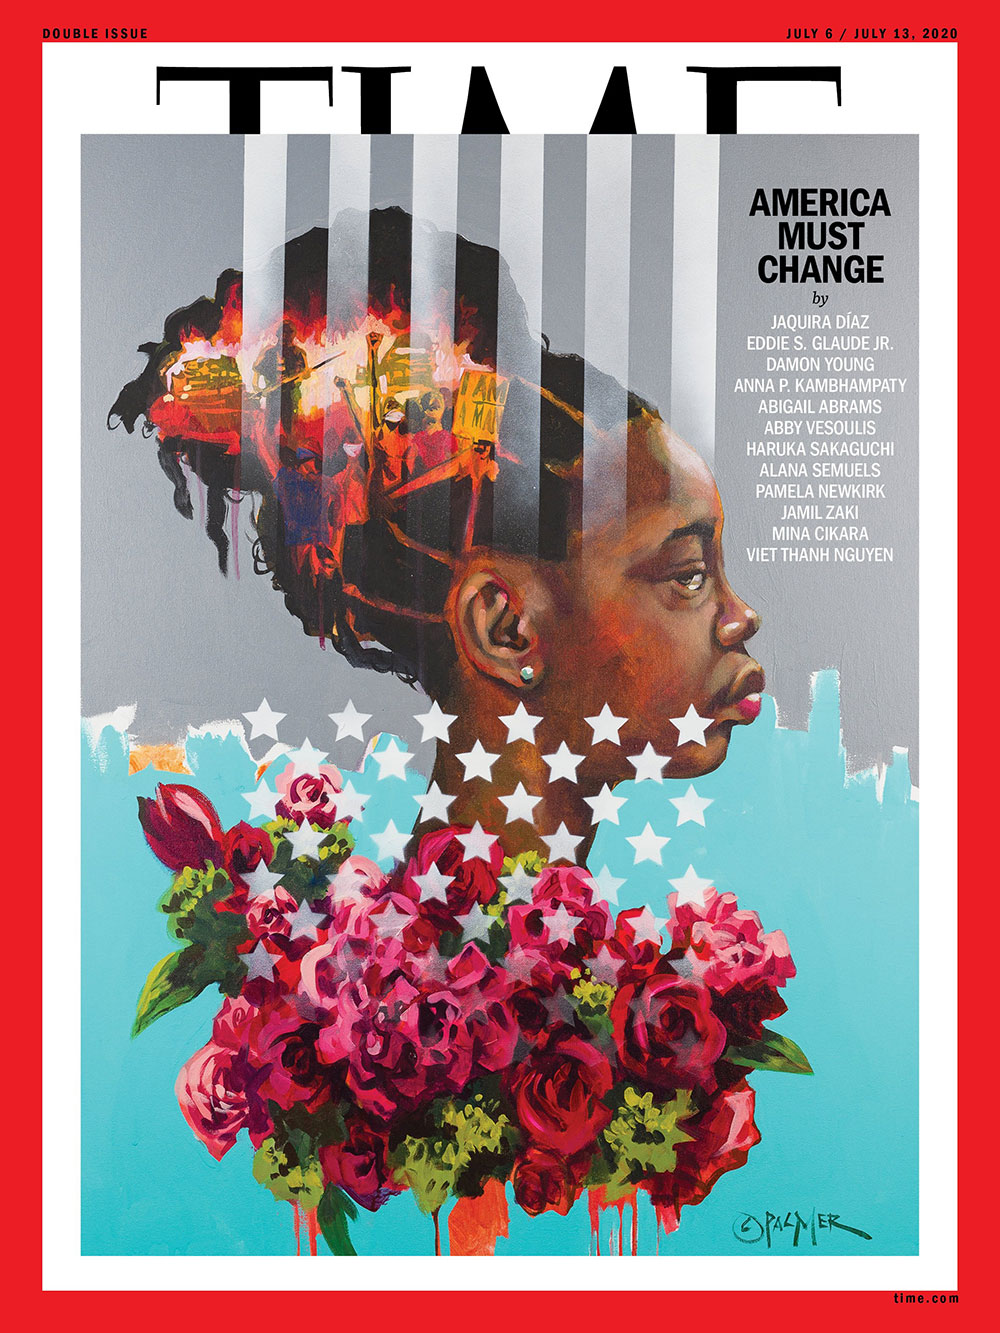 July 6-13, 2020 TIME Magazine Cover - America Must Change faetured Prof. Pamela Newkirk